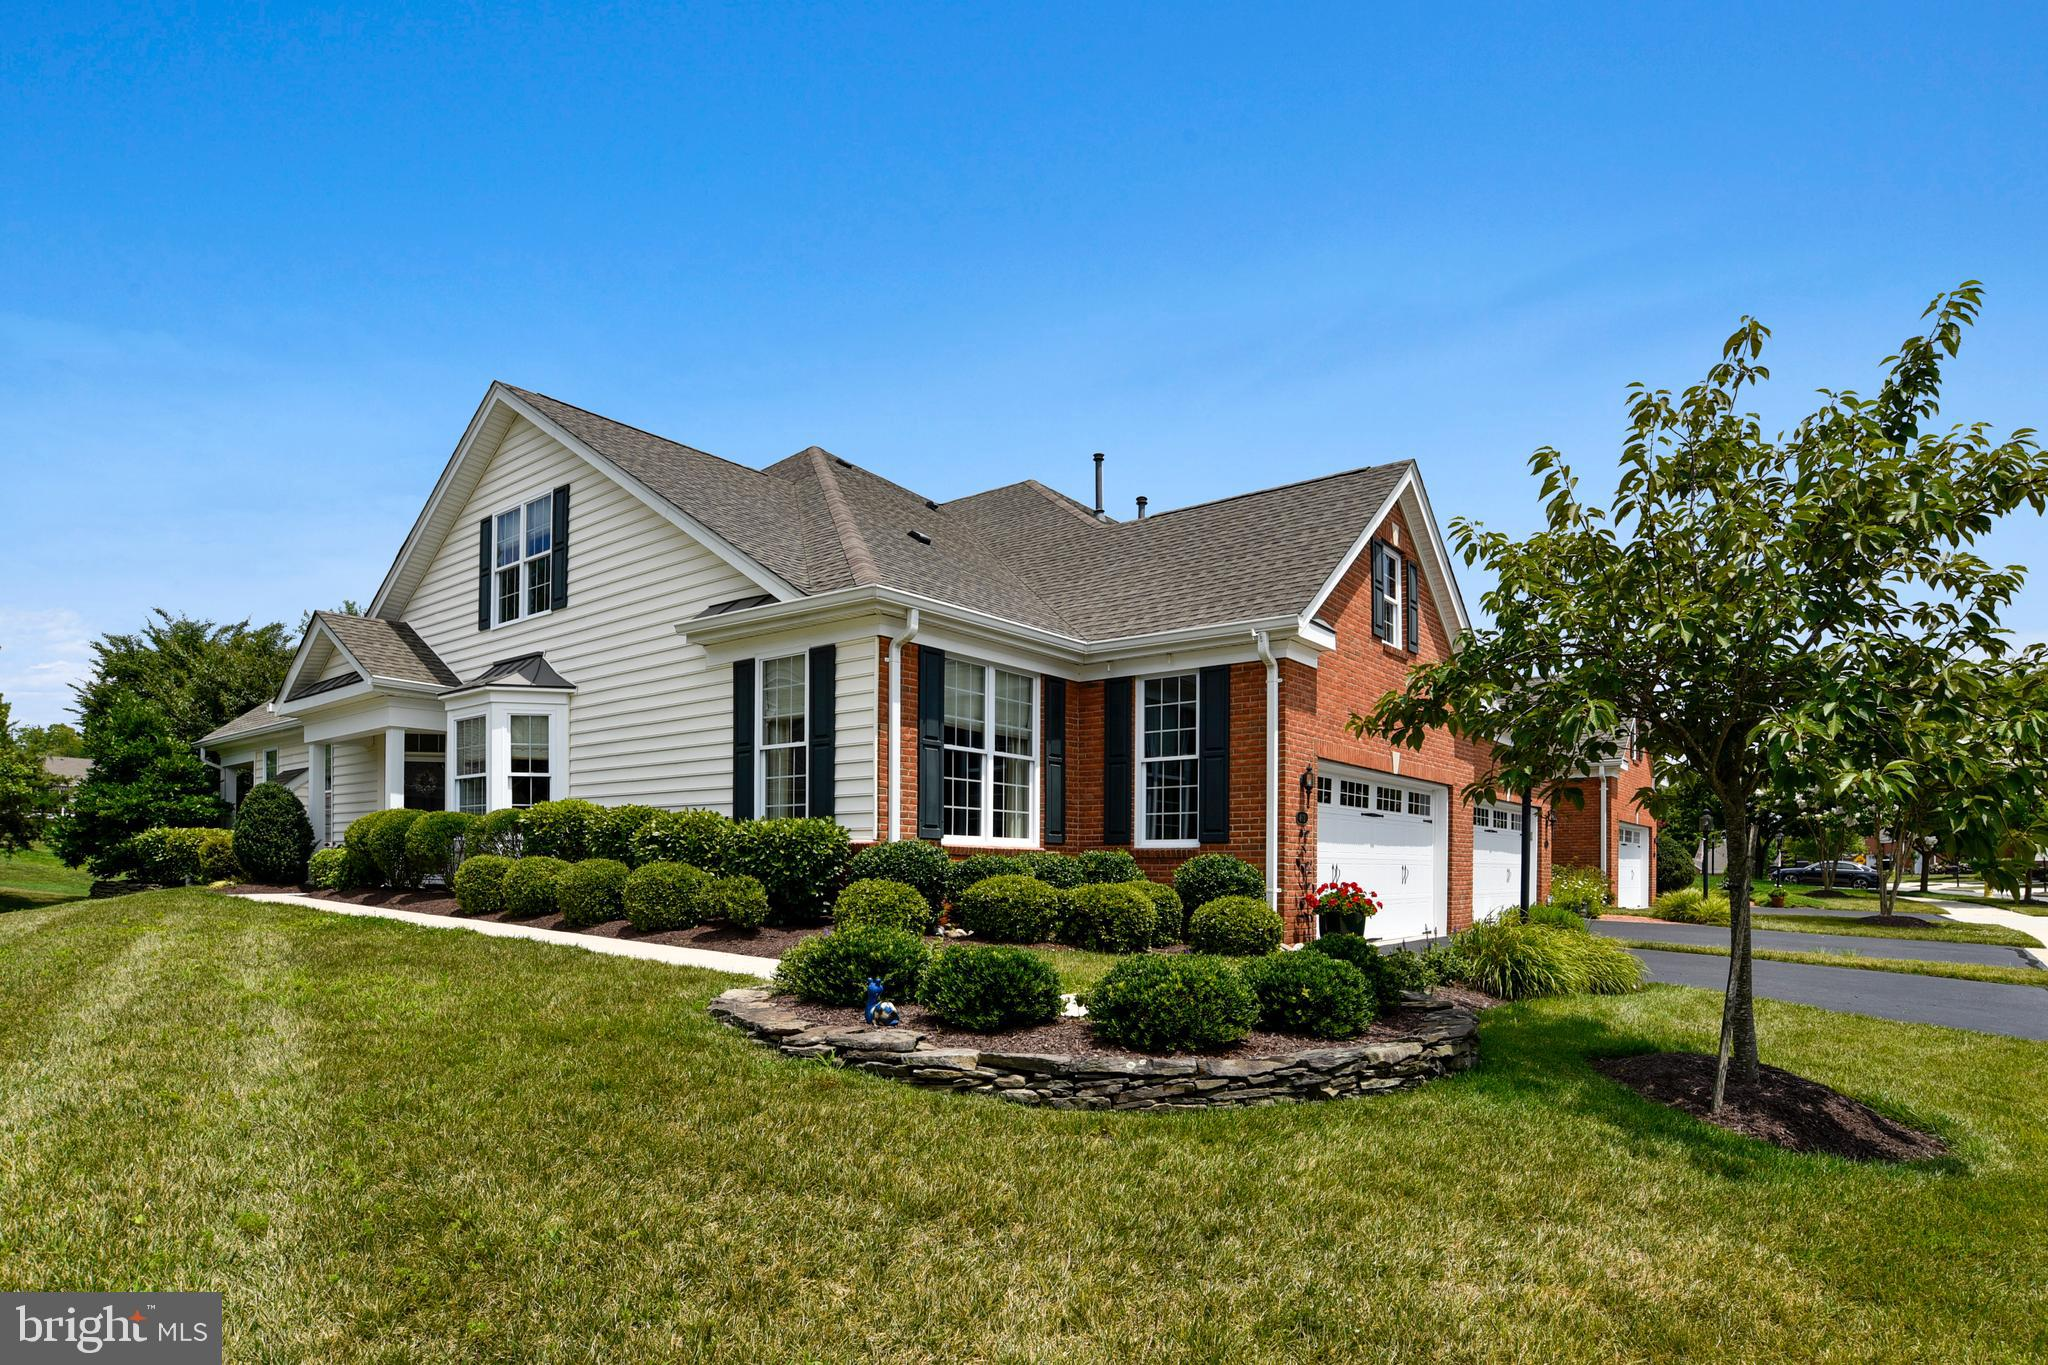 VILLA style home on the 9th Hole of this community exclusive Arnold Palmer Golf Course! This elegant